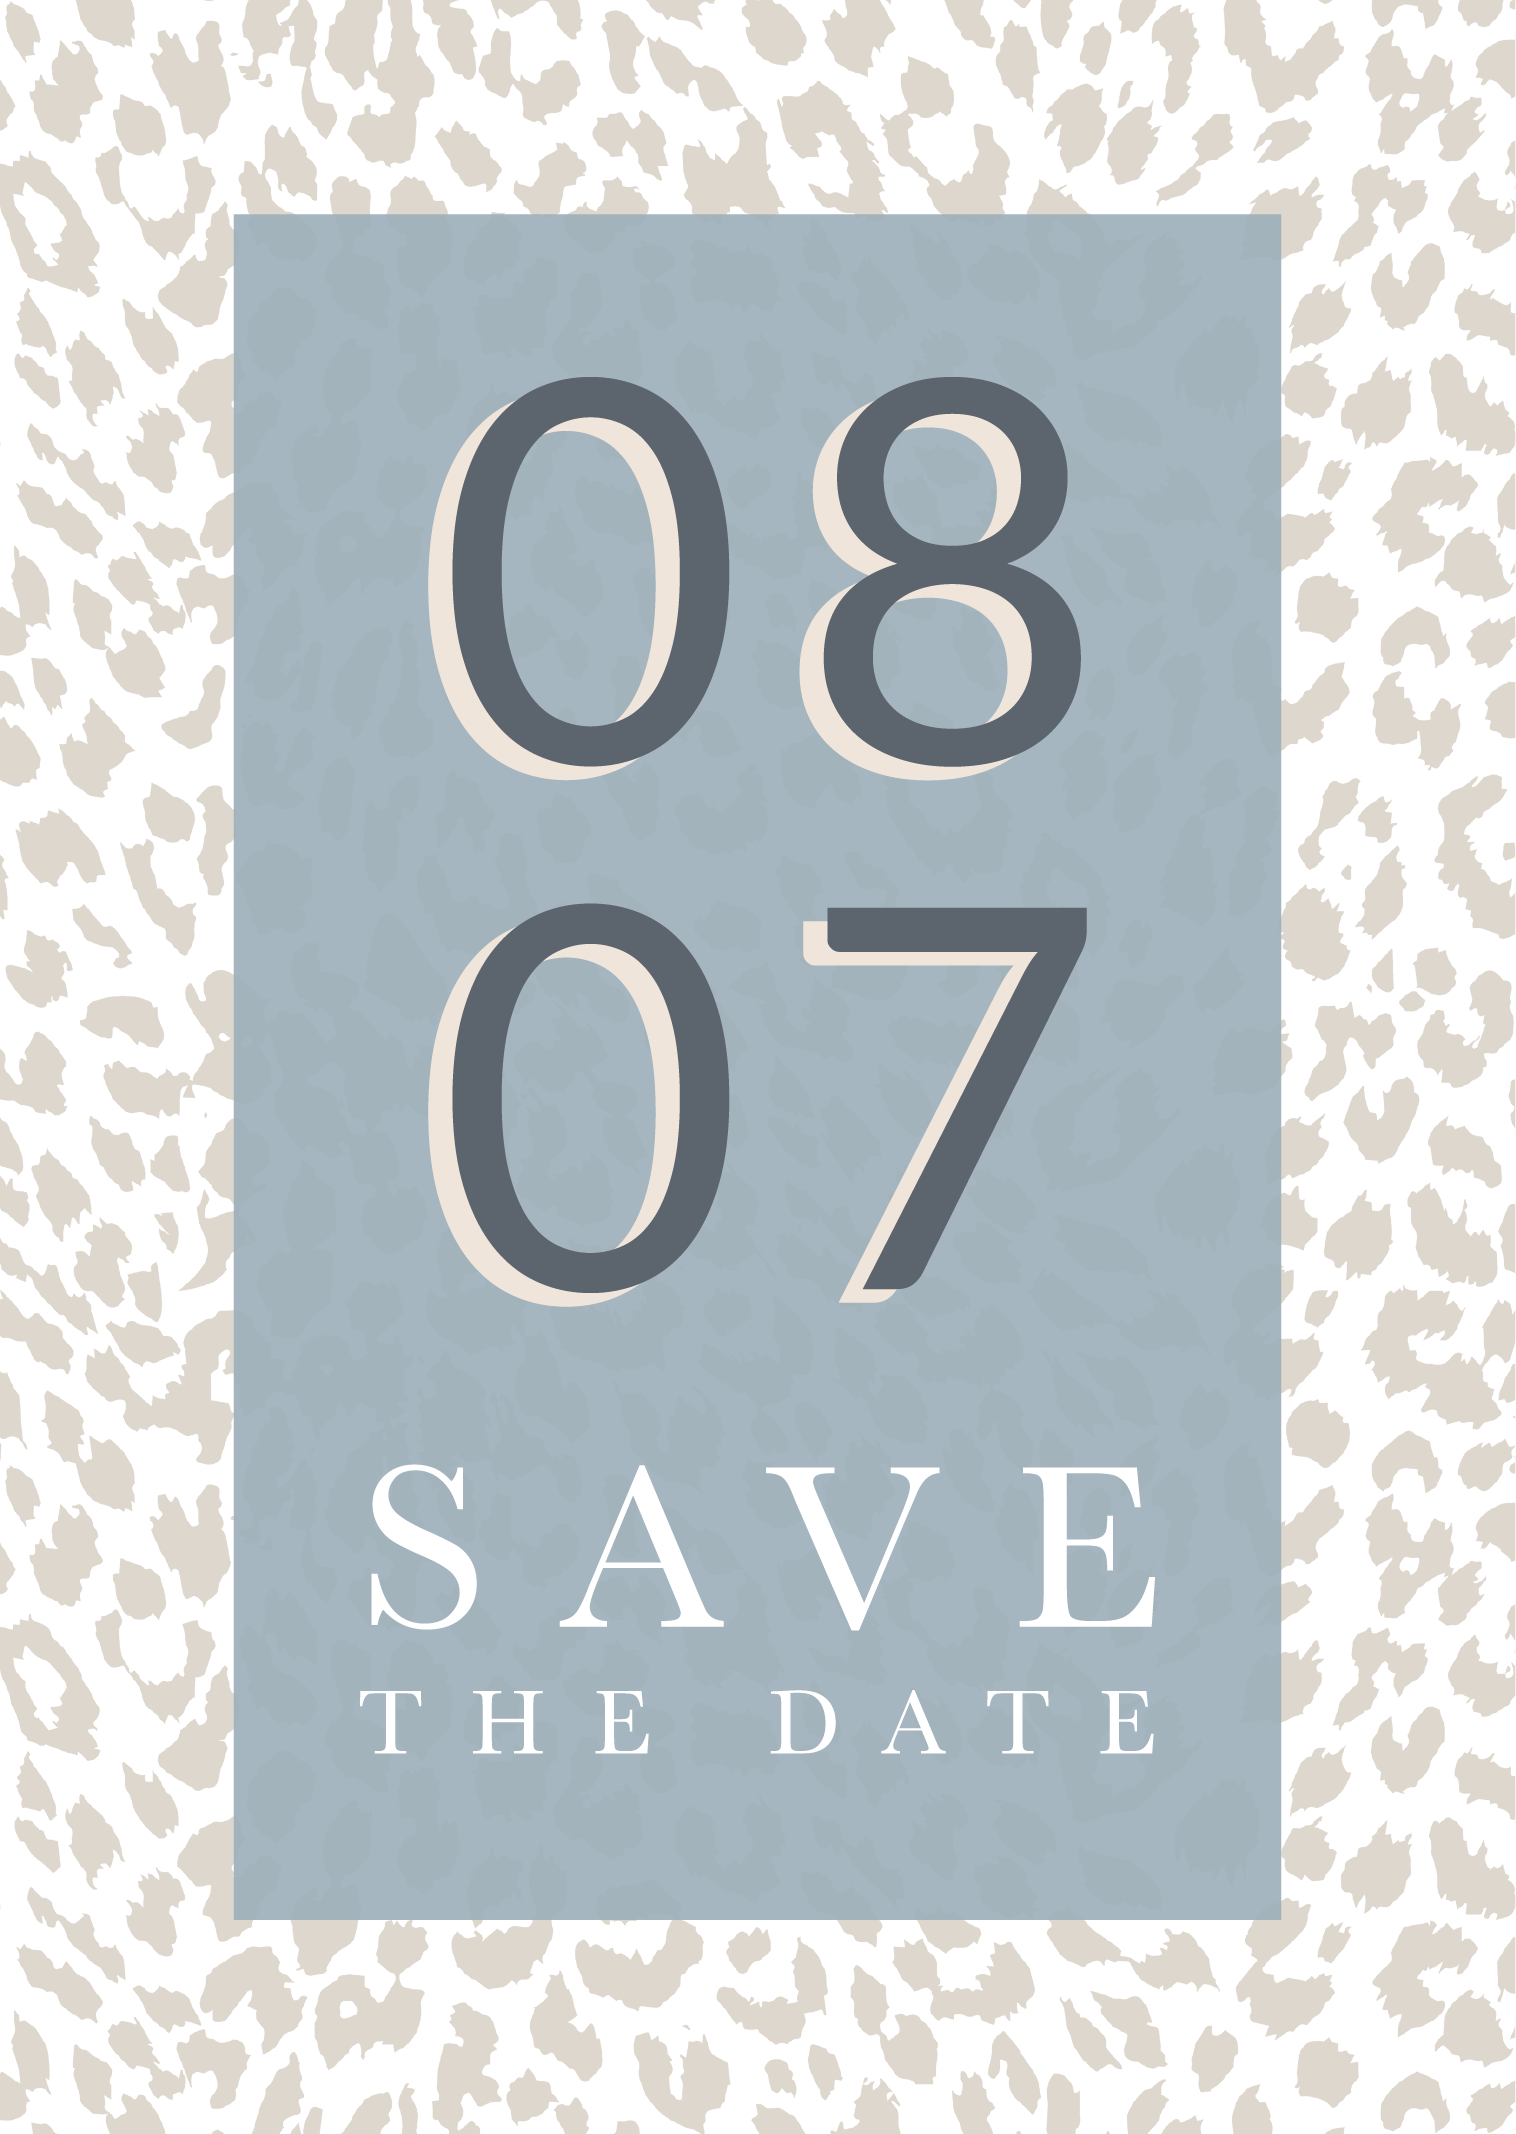 Save the Date 08.07.20